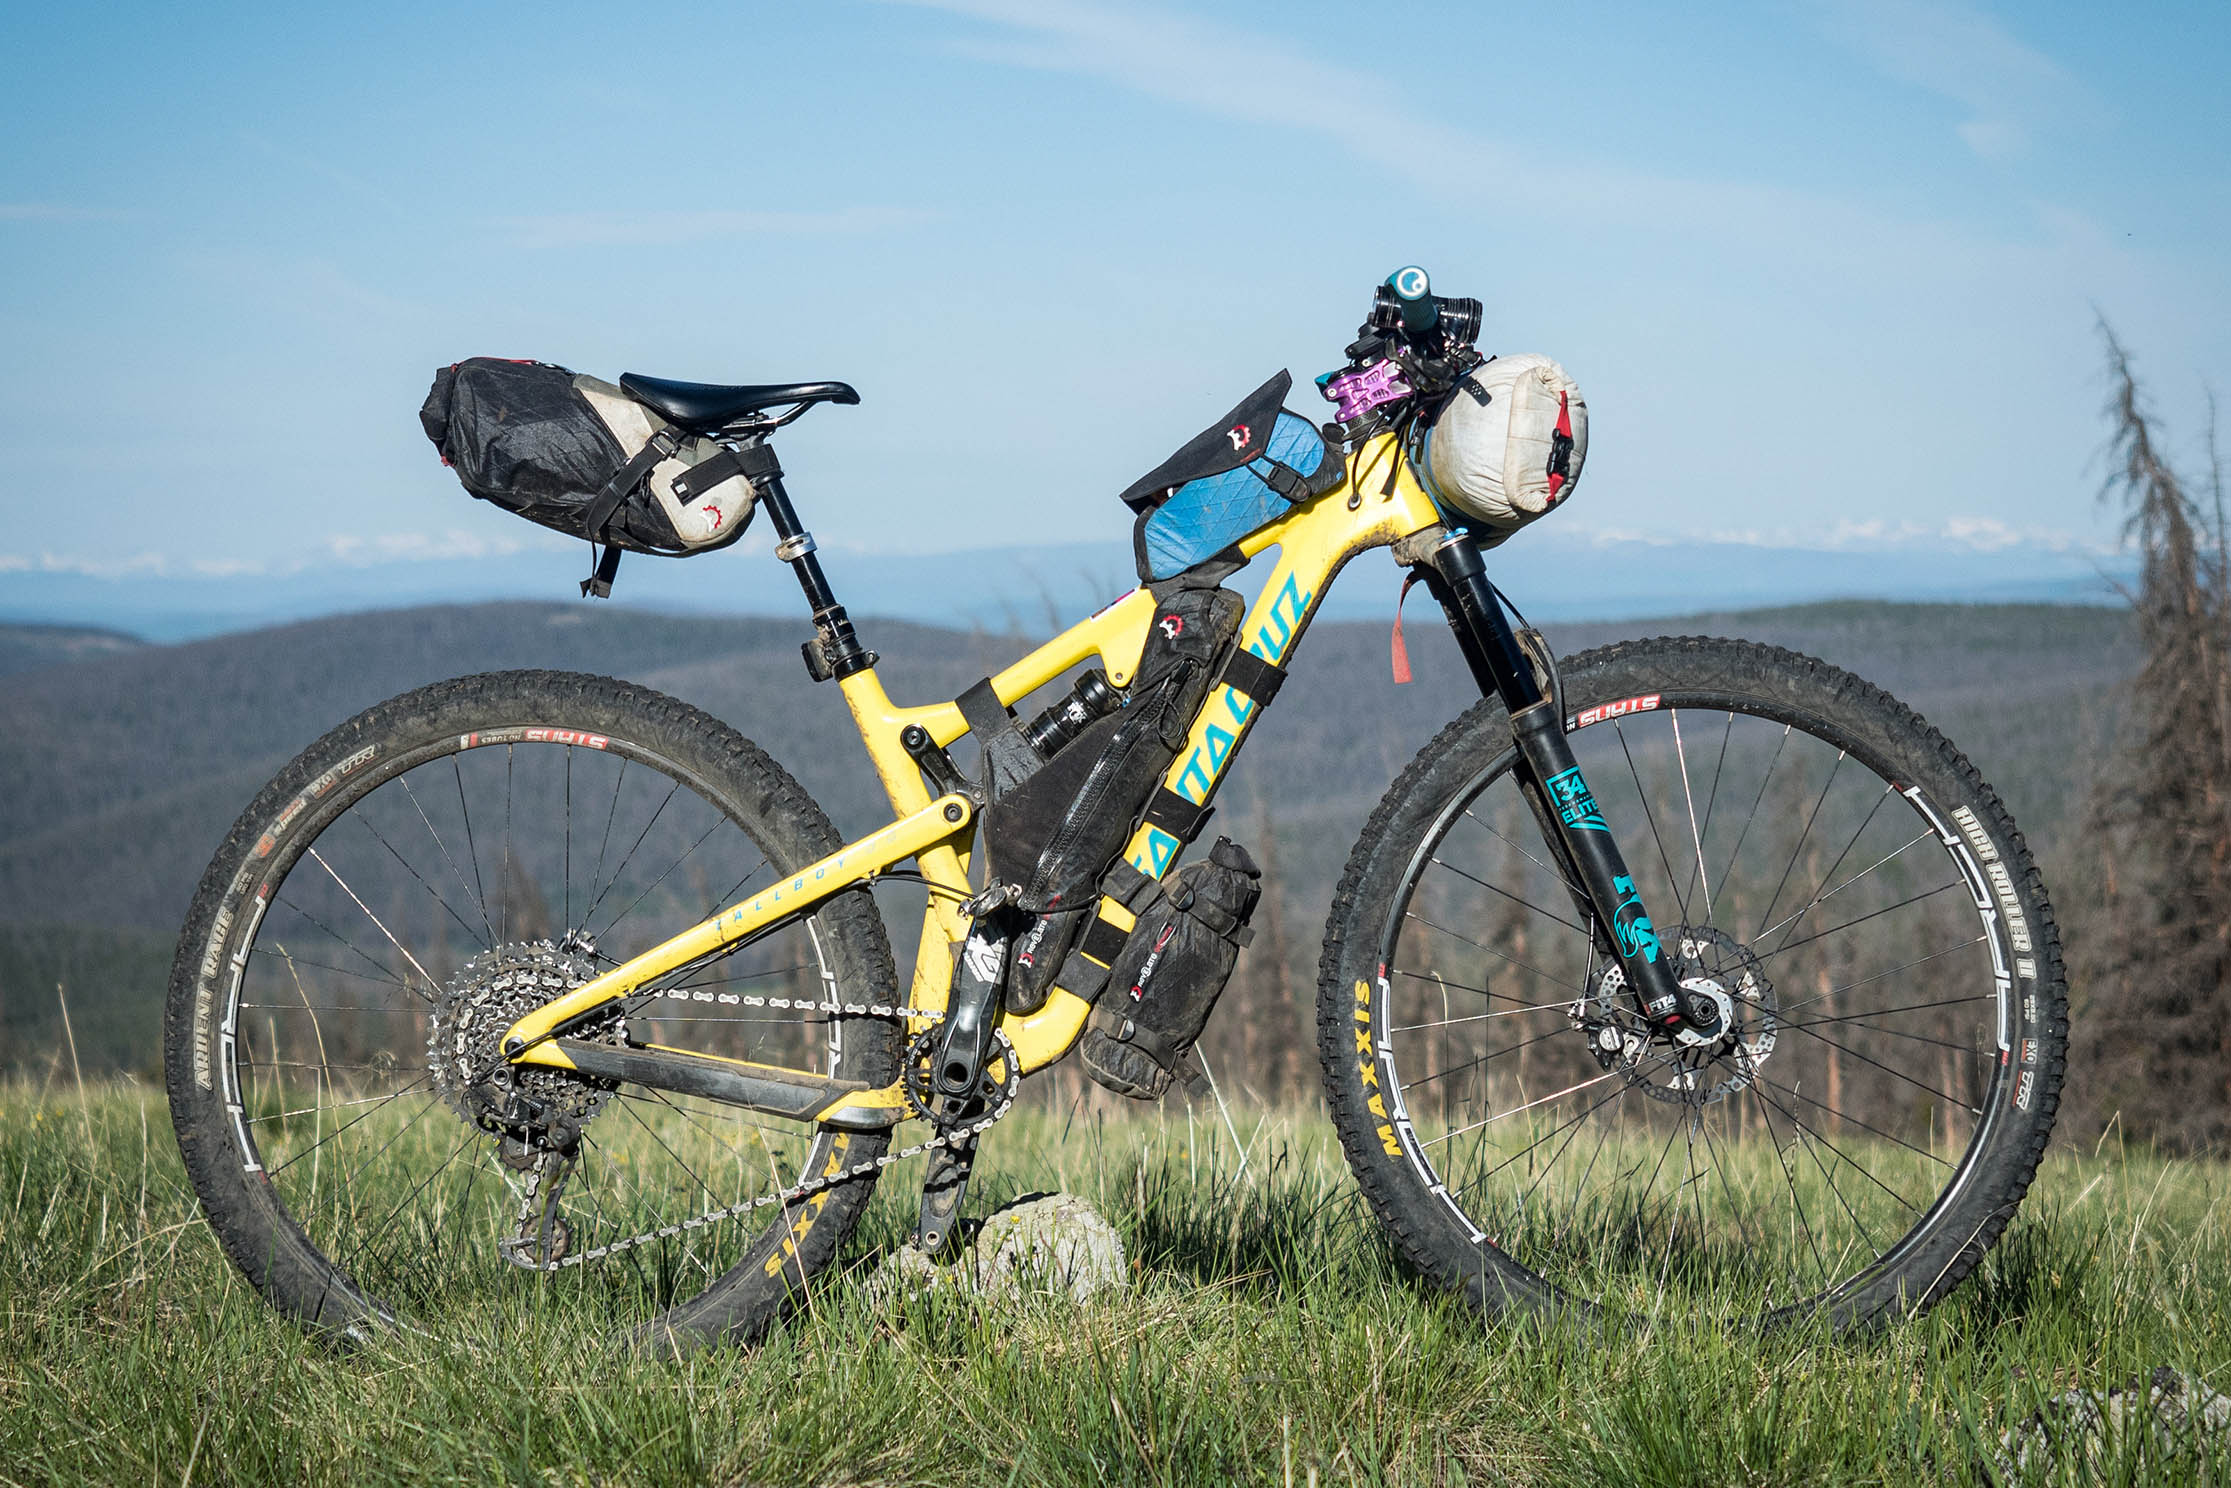 2019-Colorado-Trail-Rigs-Huw-Oliver.jpg